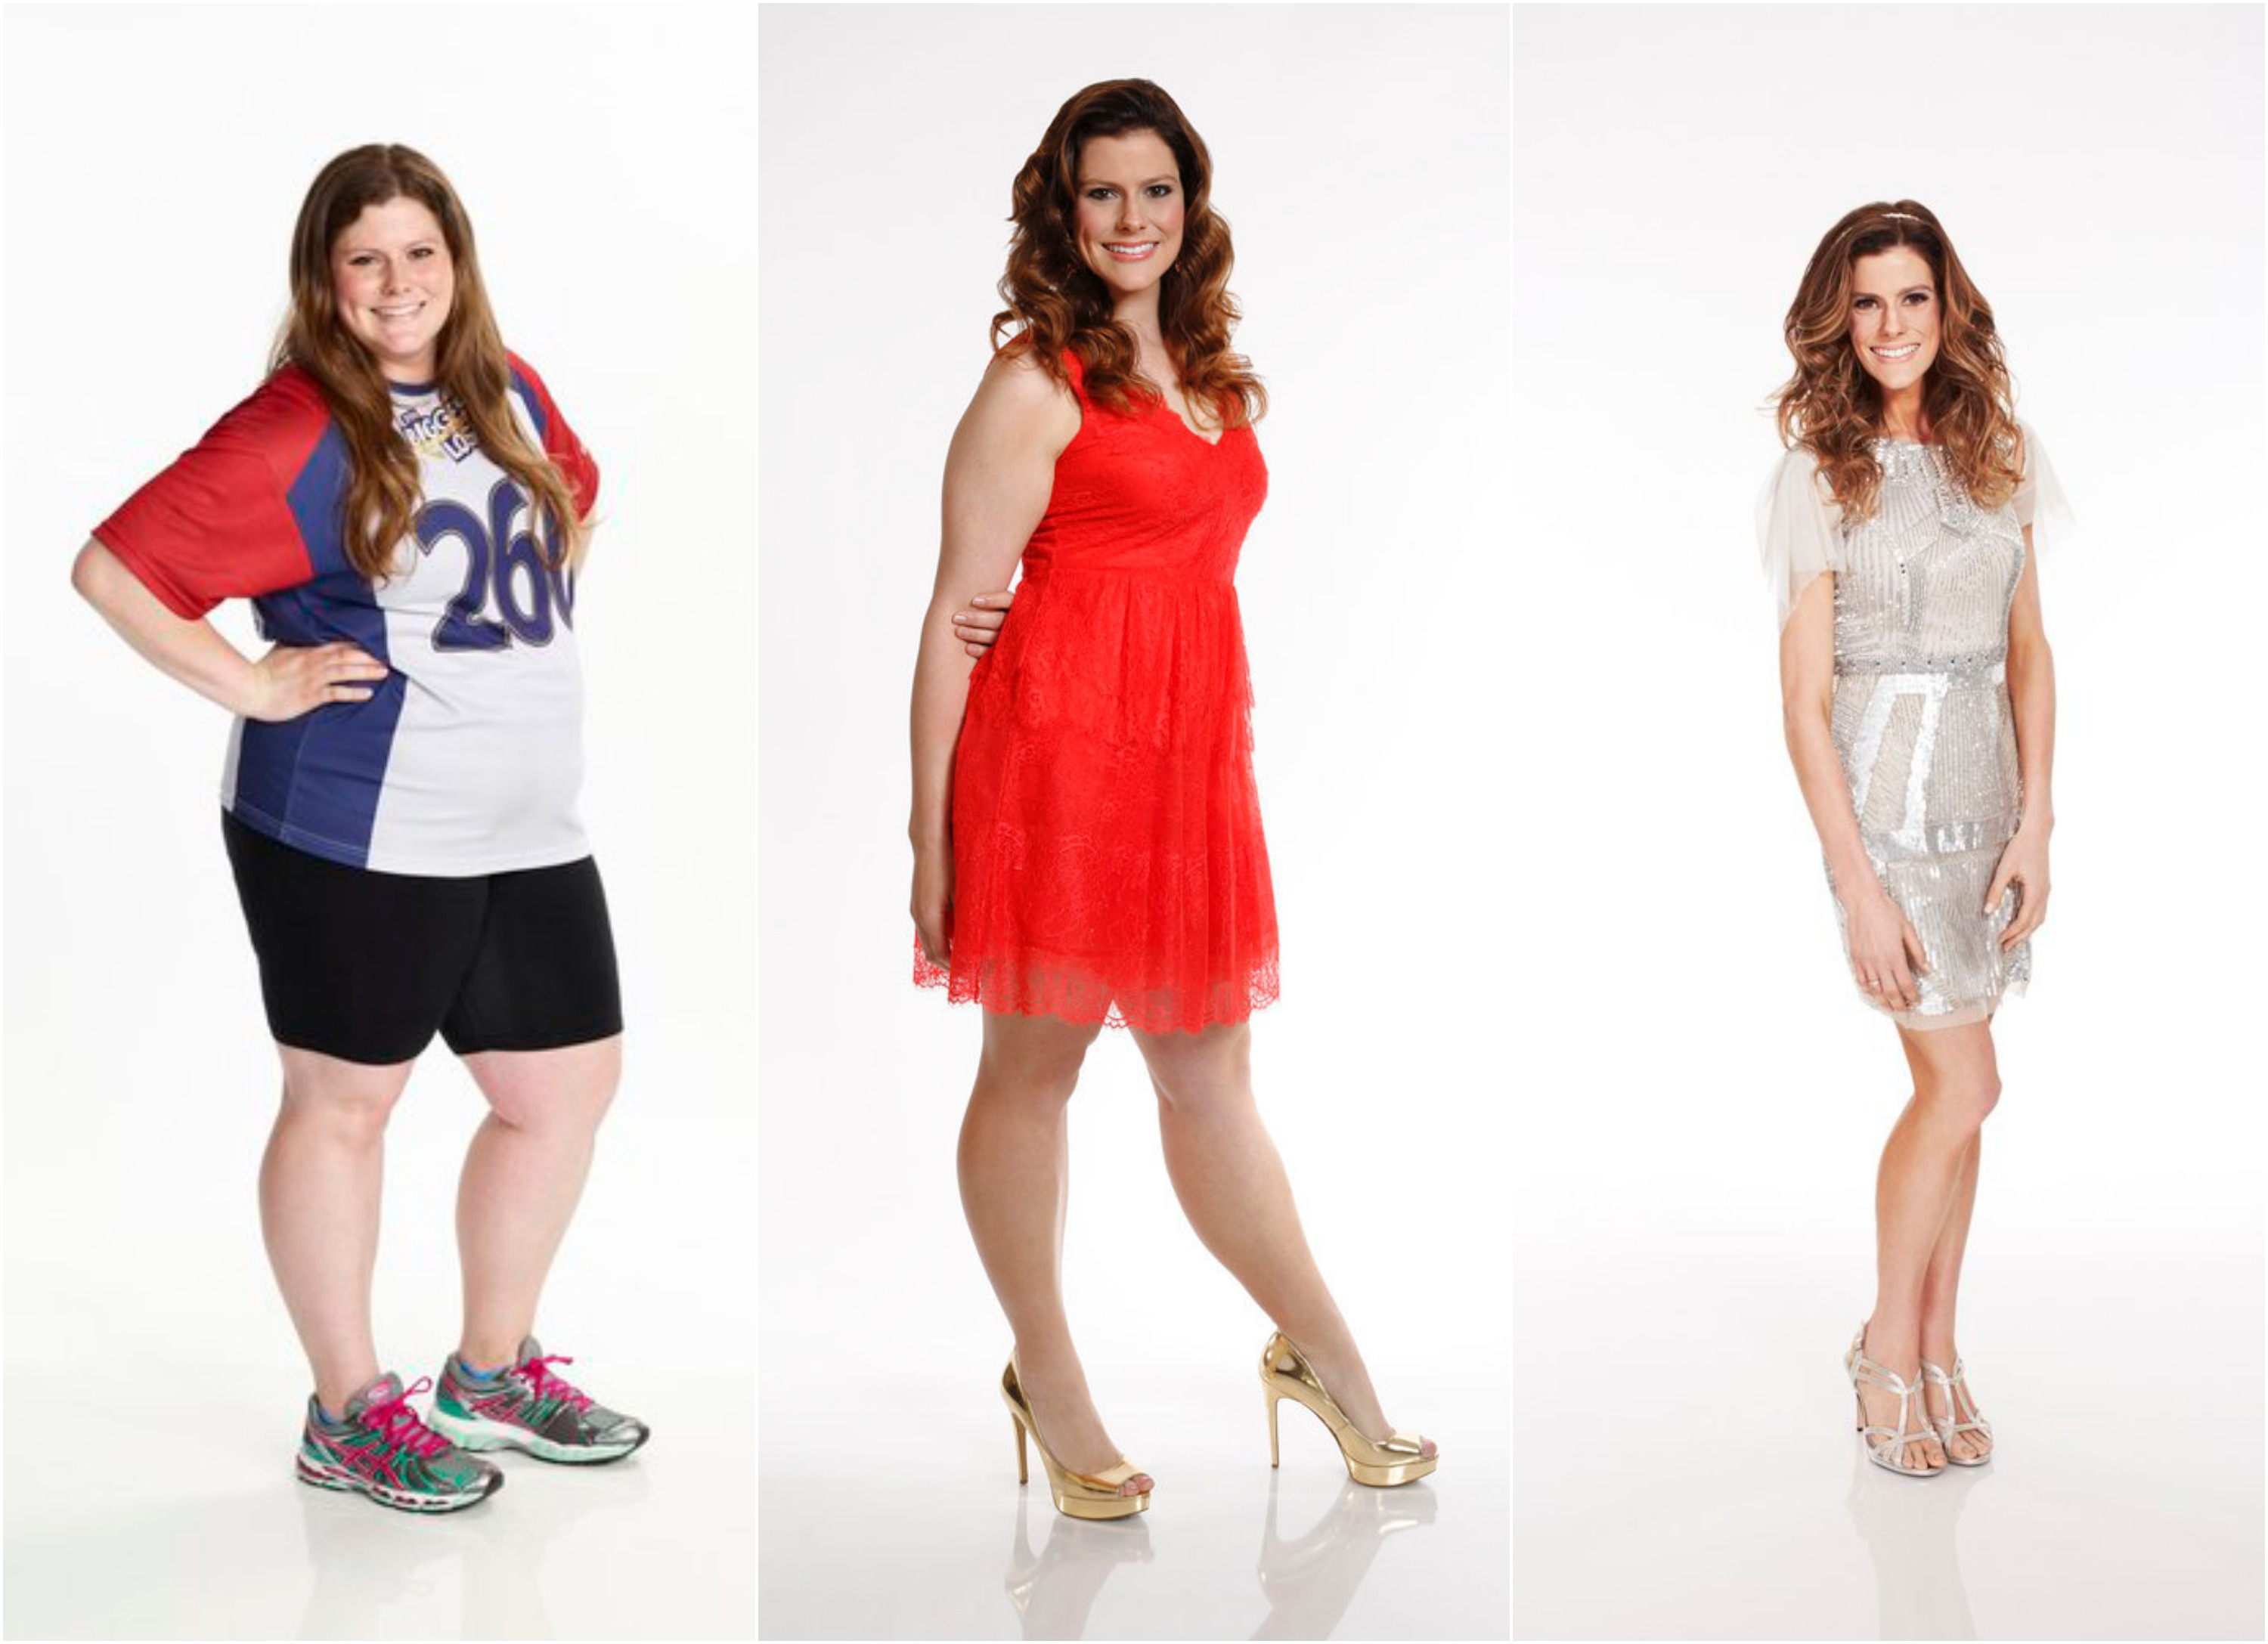 Biggest Loser Finale 2014: Did Rachel Lose Too Much Weight?